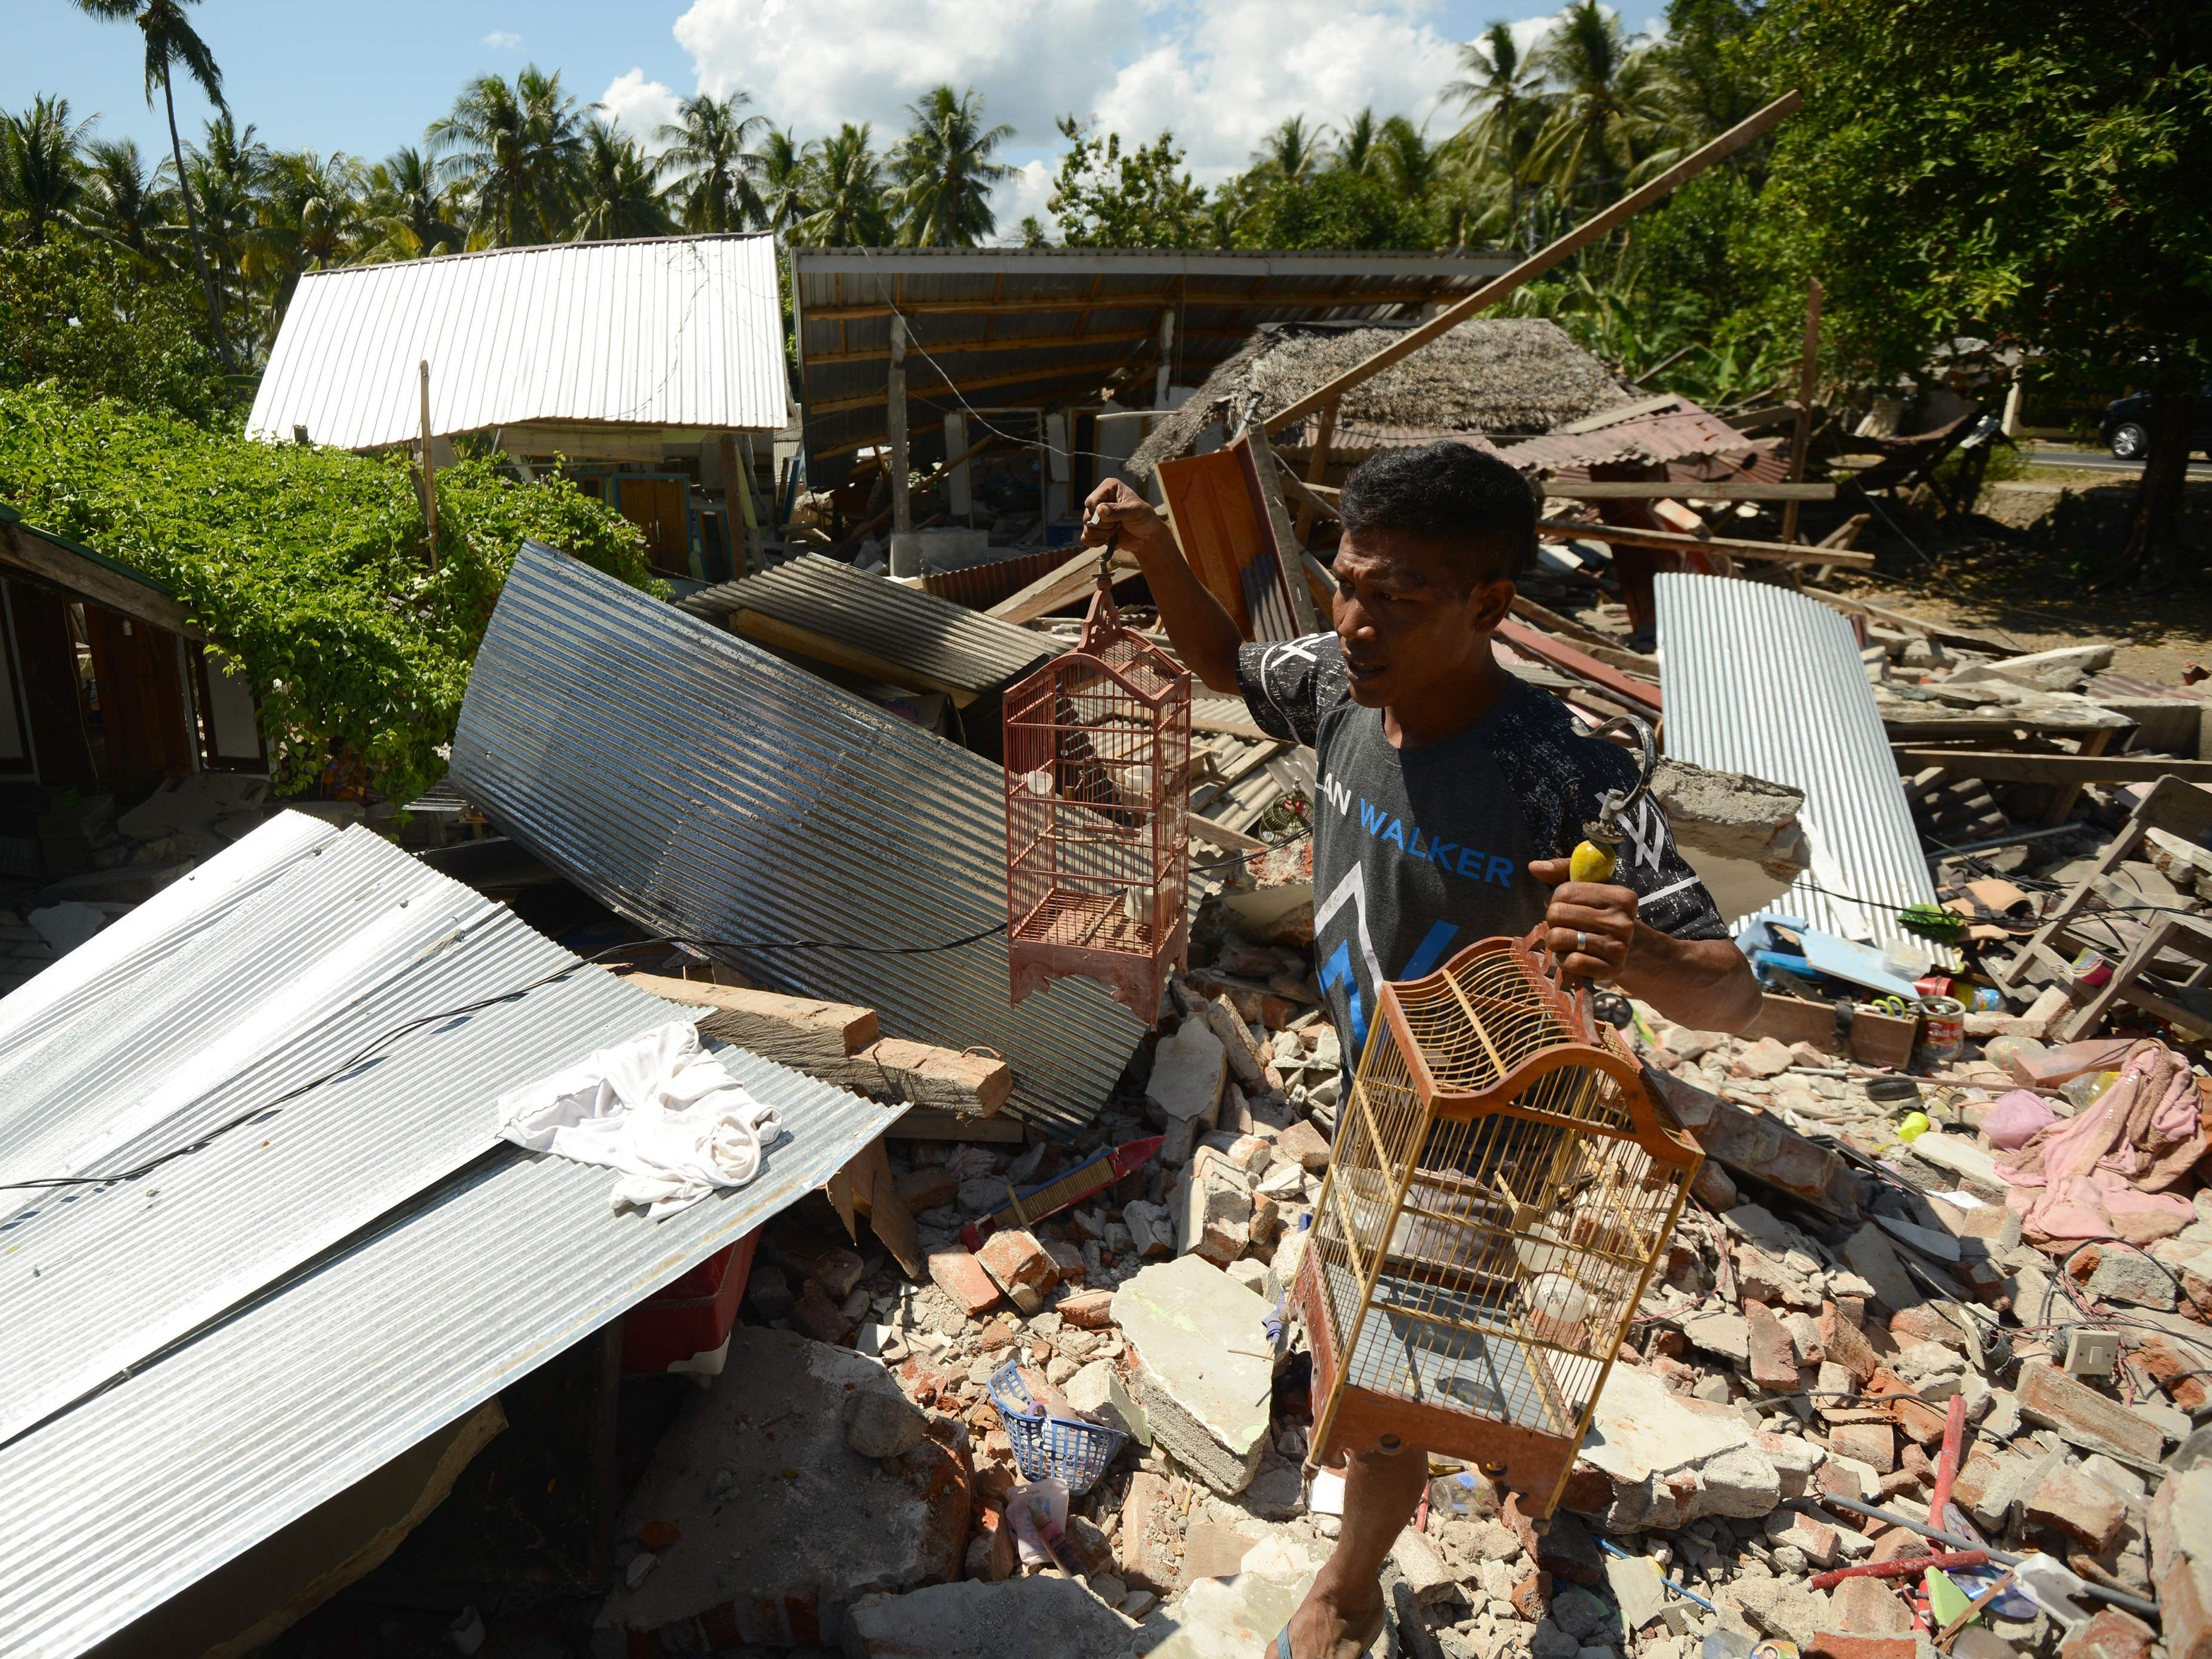 A man carrying bird cages walks past a damaged house at Pemenang village in northern Lombok in West Nusa Tenggara province on Aug. 7, 2018, two days after the area was struck by an earthquake.